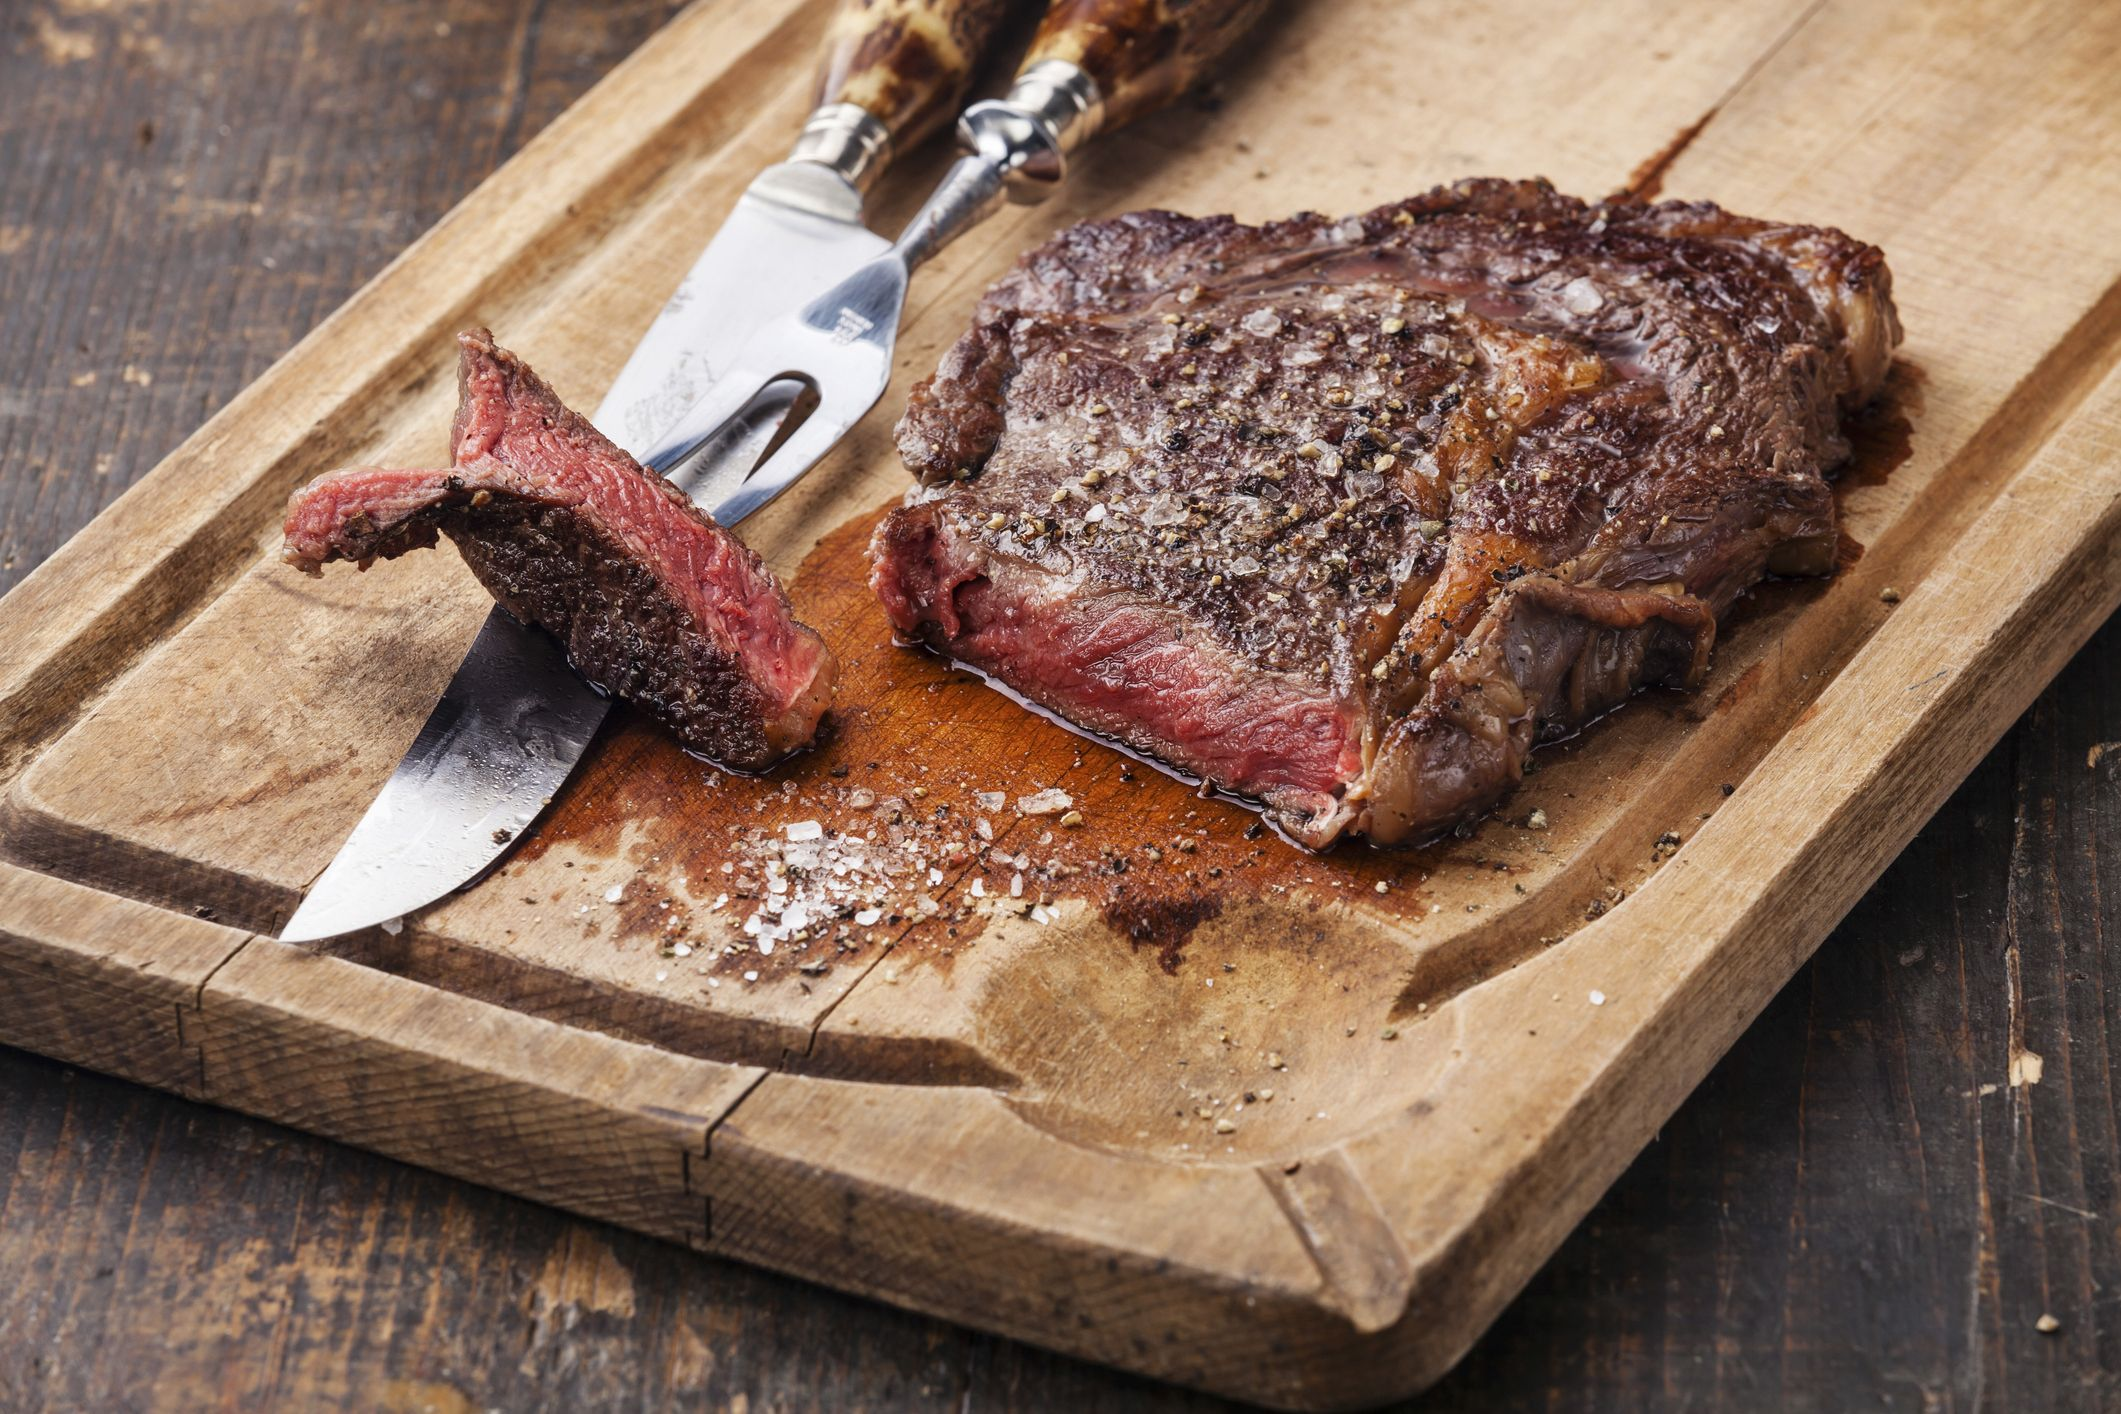 Medium rare steak GettyImages 522203498 58900e793df78caebc70c1cc